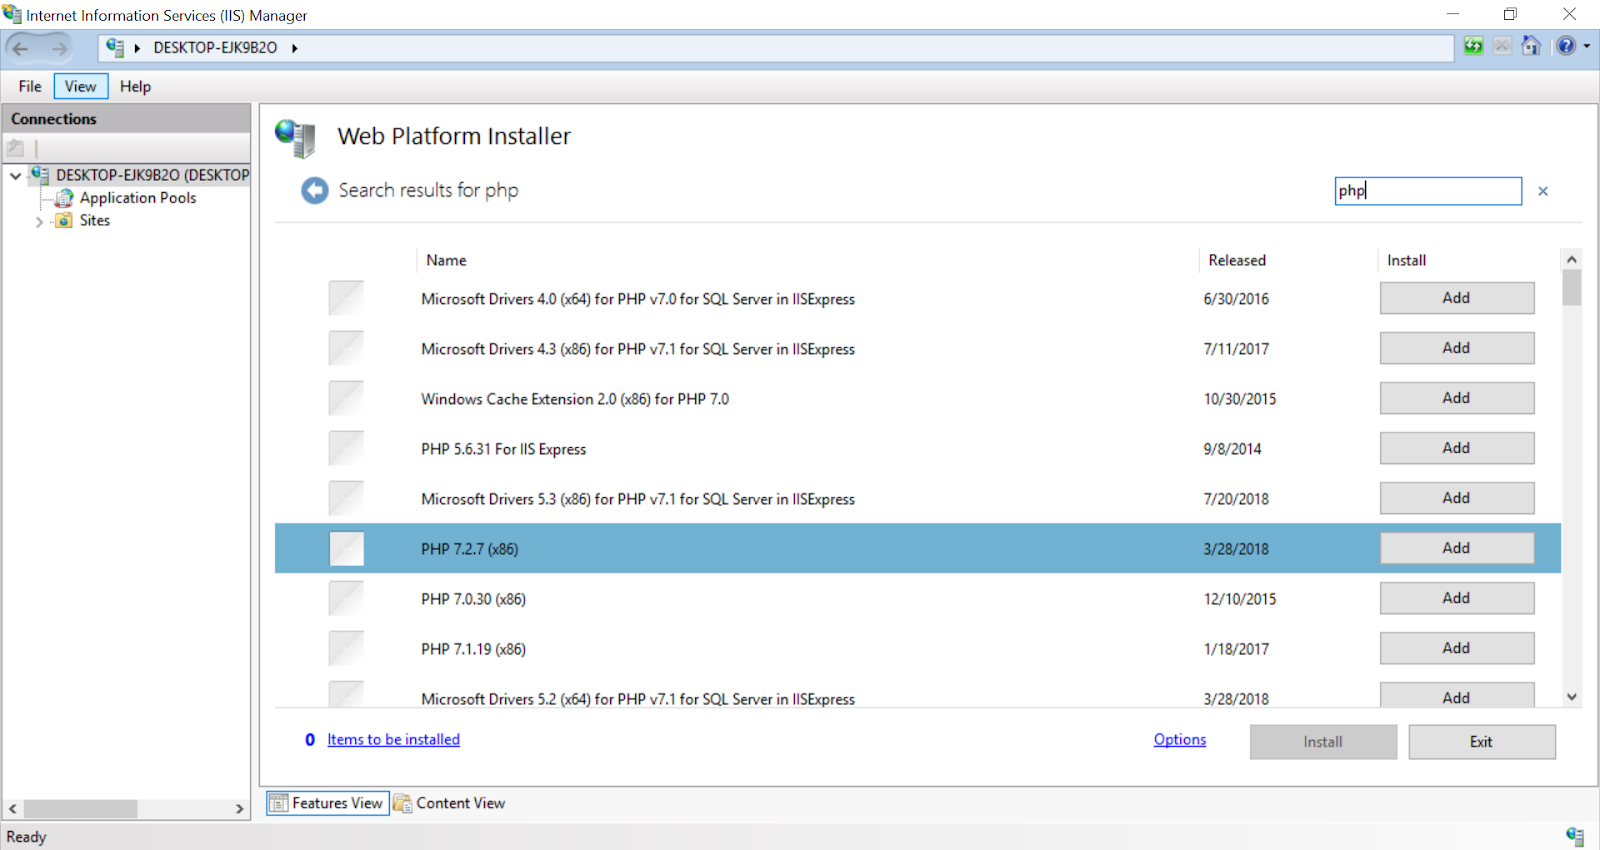 How to install and configure multiple versions of PHP in IIS